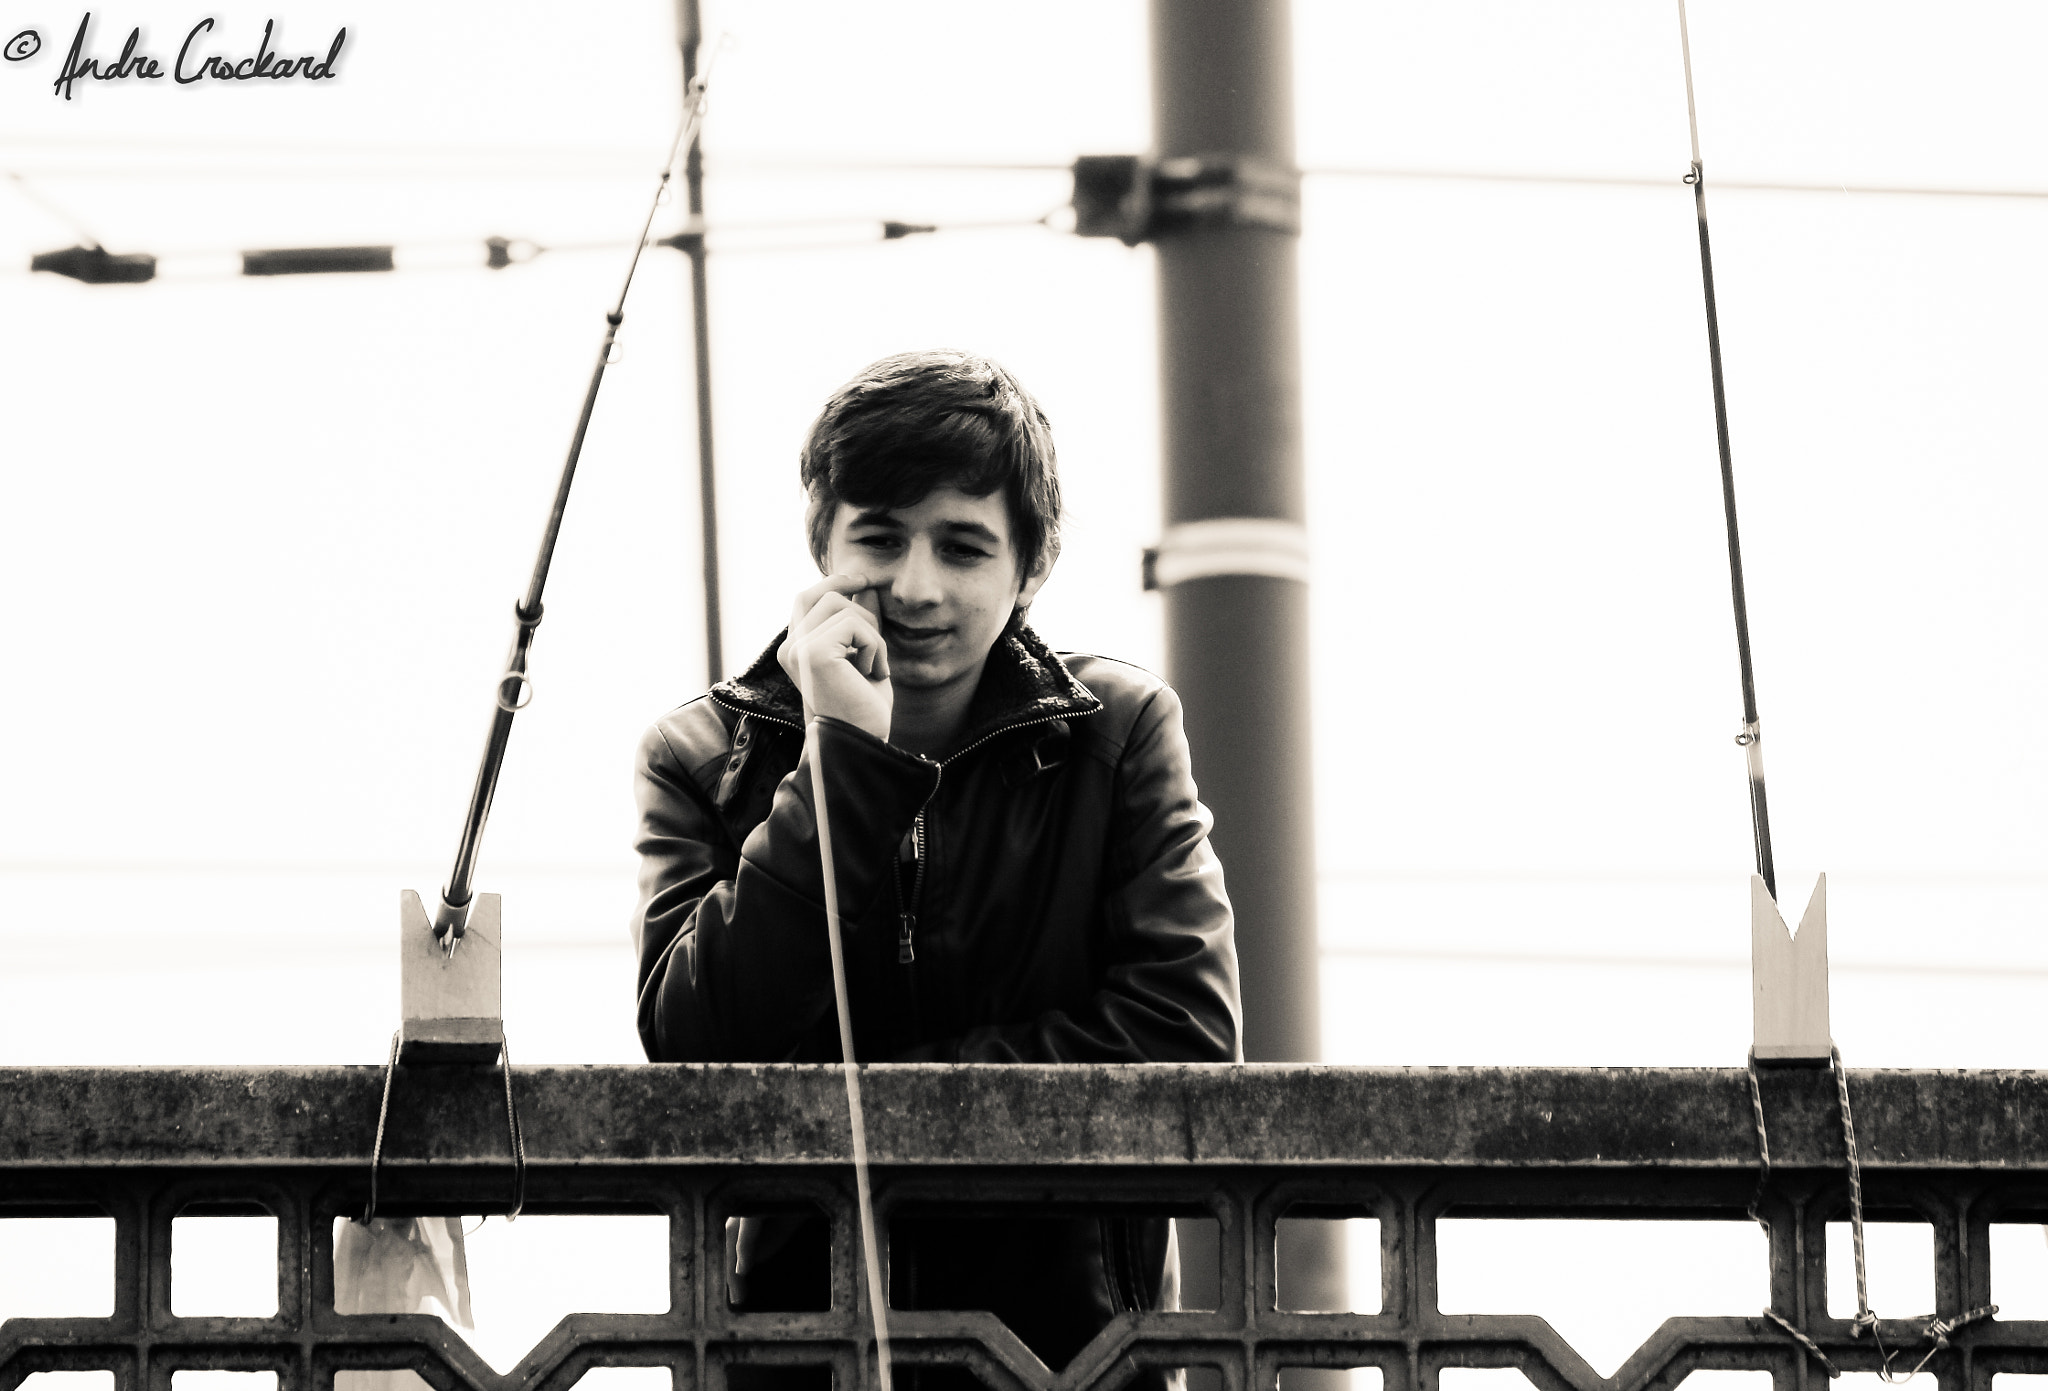 Photograph That boy by Andre Crockard on 500px